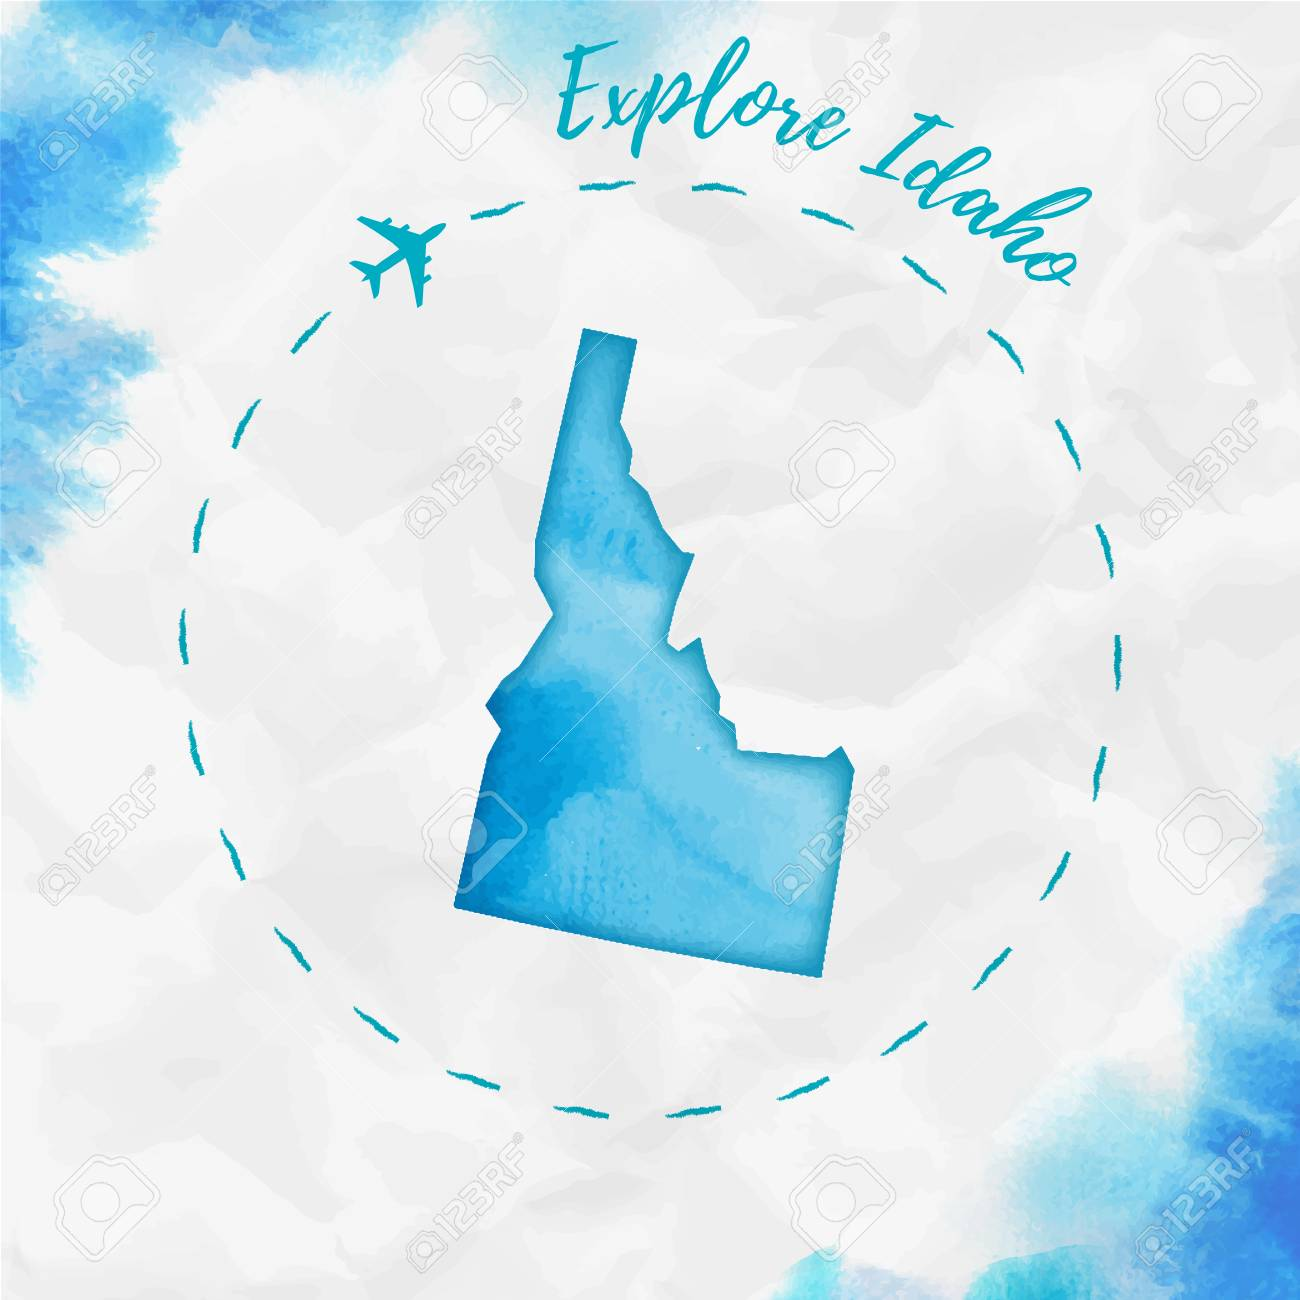 Idaho watercolor us state map in turquoise colors. Explore Idaho.. on idaho road map, idaho on the map, idaho in the us, simple idaho map, idaho outline, mountain home idaho street map, chicago u.s. map, rocky mountains in idaho map, lower treasure valley idaho map, idaho politics, idaho on world map, idaho department of water resources, idaho department of natural resources, northern utah idaho map, northeastern idaho map, idaho usa, idaho tourism, star idaho on map, idaho known for, idaho on a map,